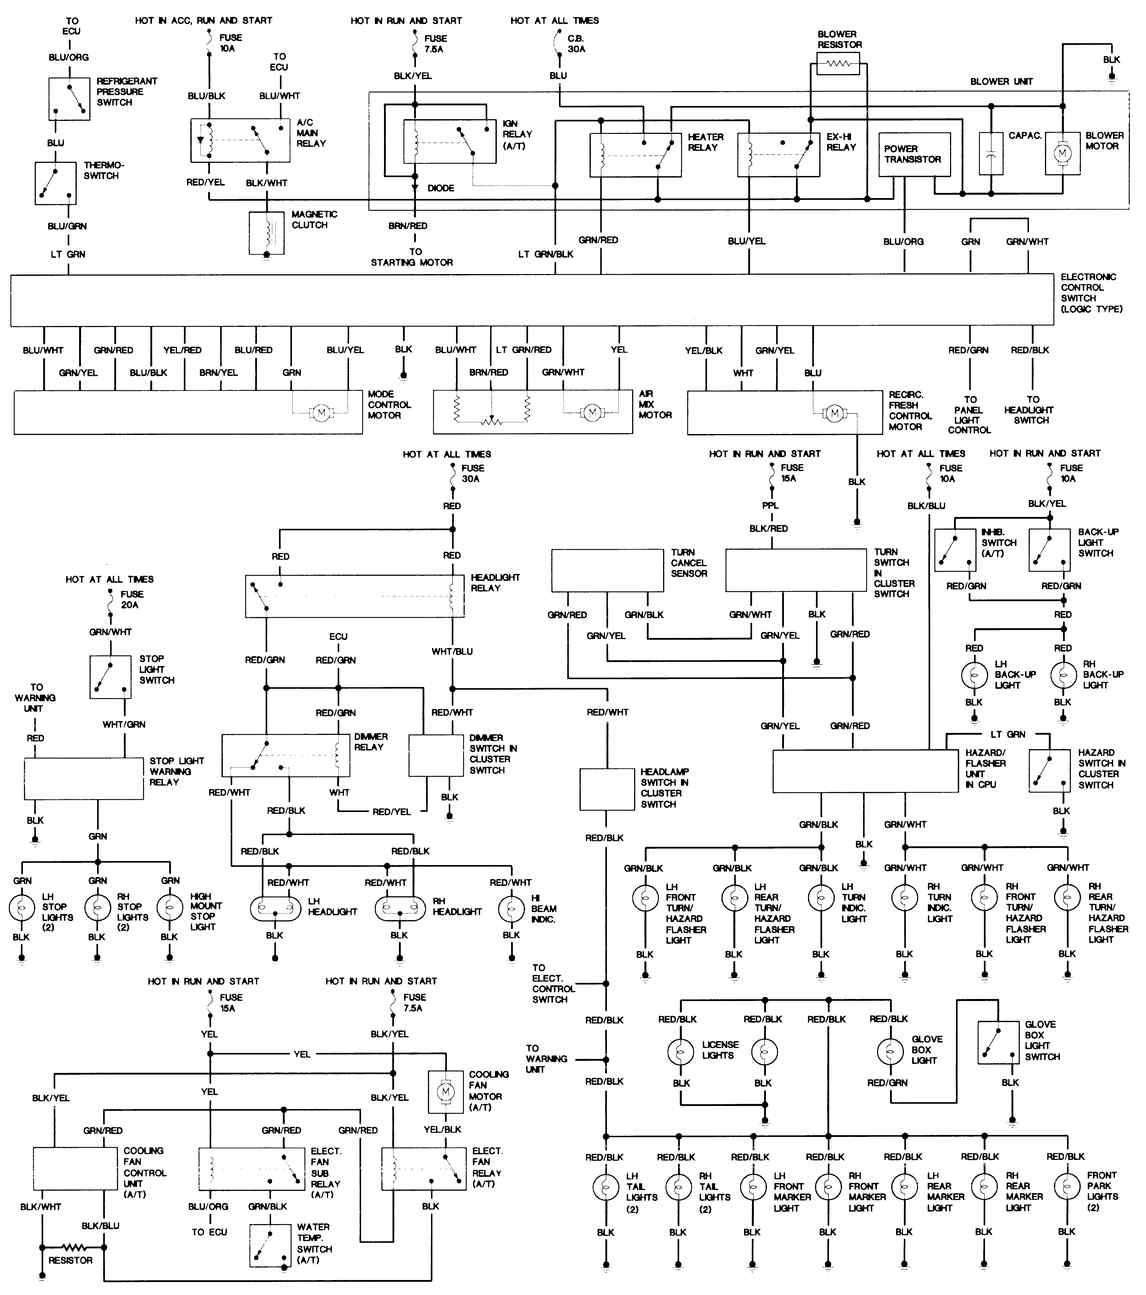 87 rx7 wiring diagram wiring diagram site 87 rx7 wiring diagram